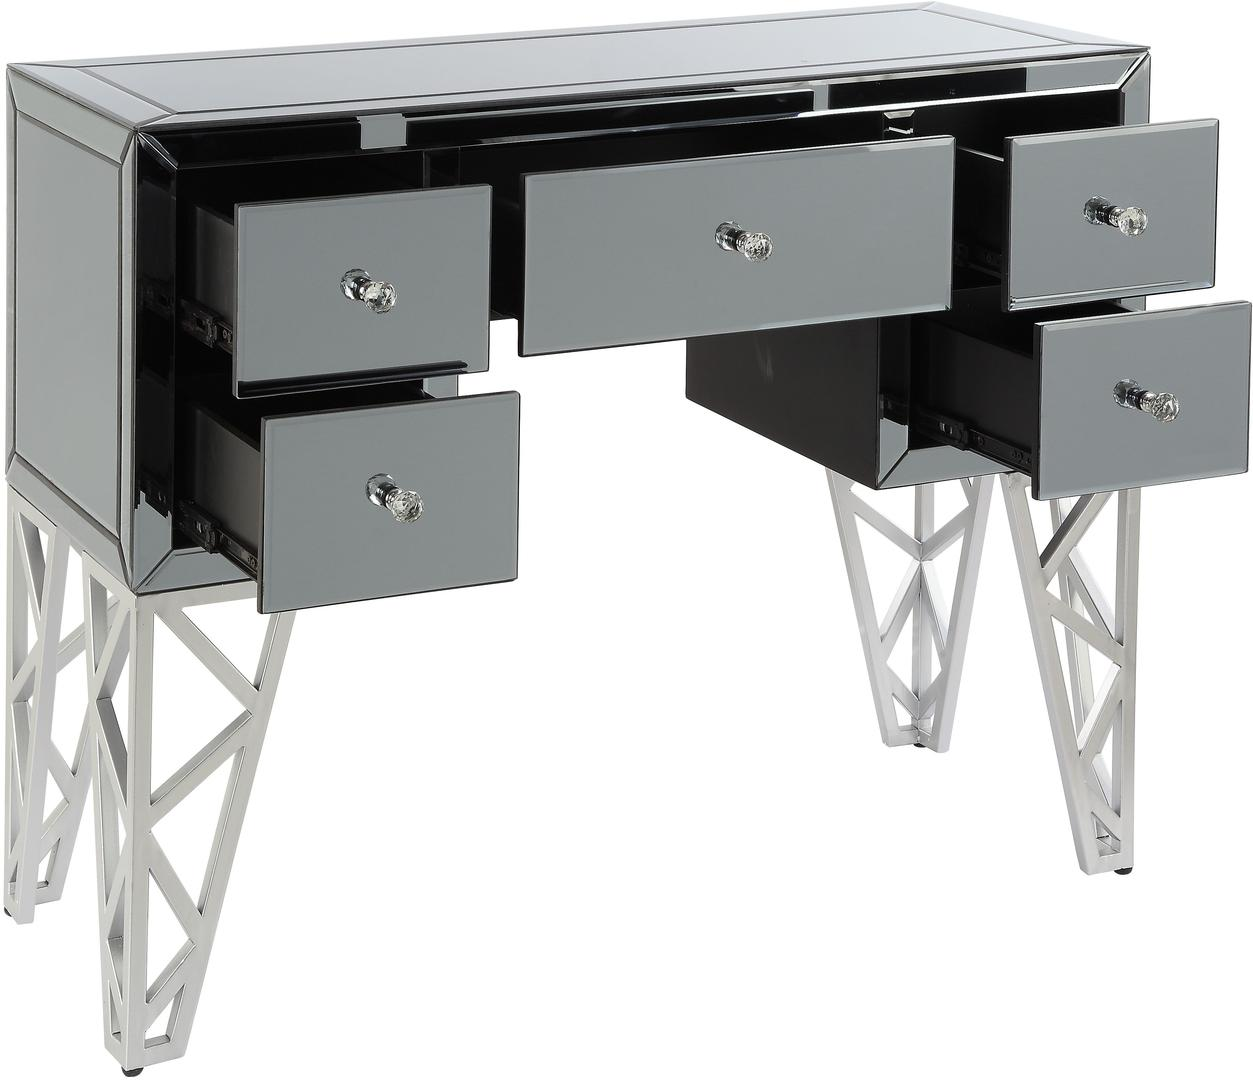 Monique Console Table with drawers open